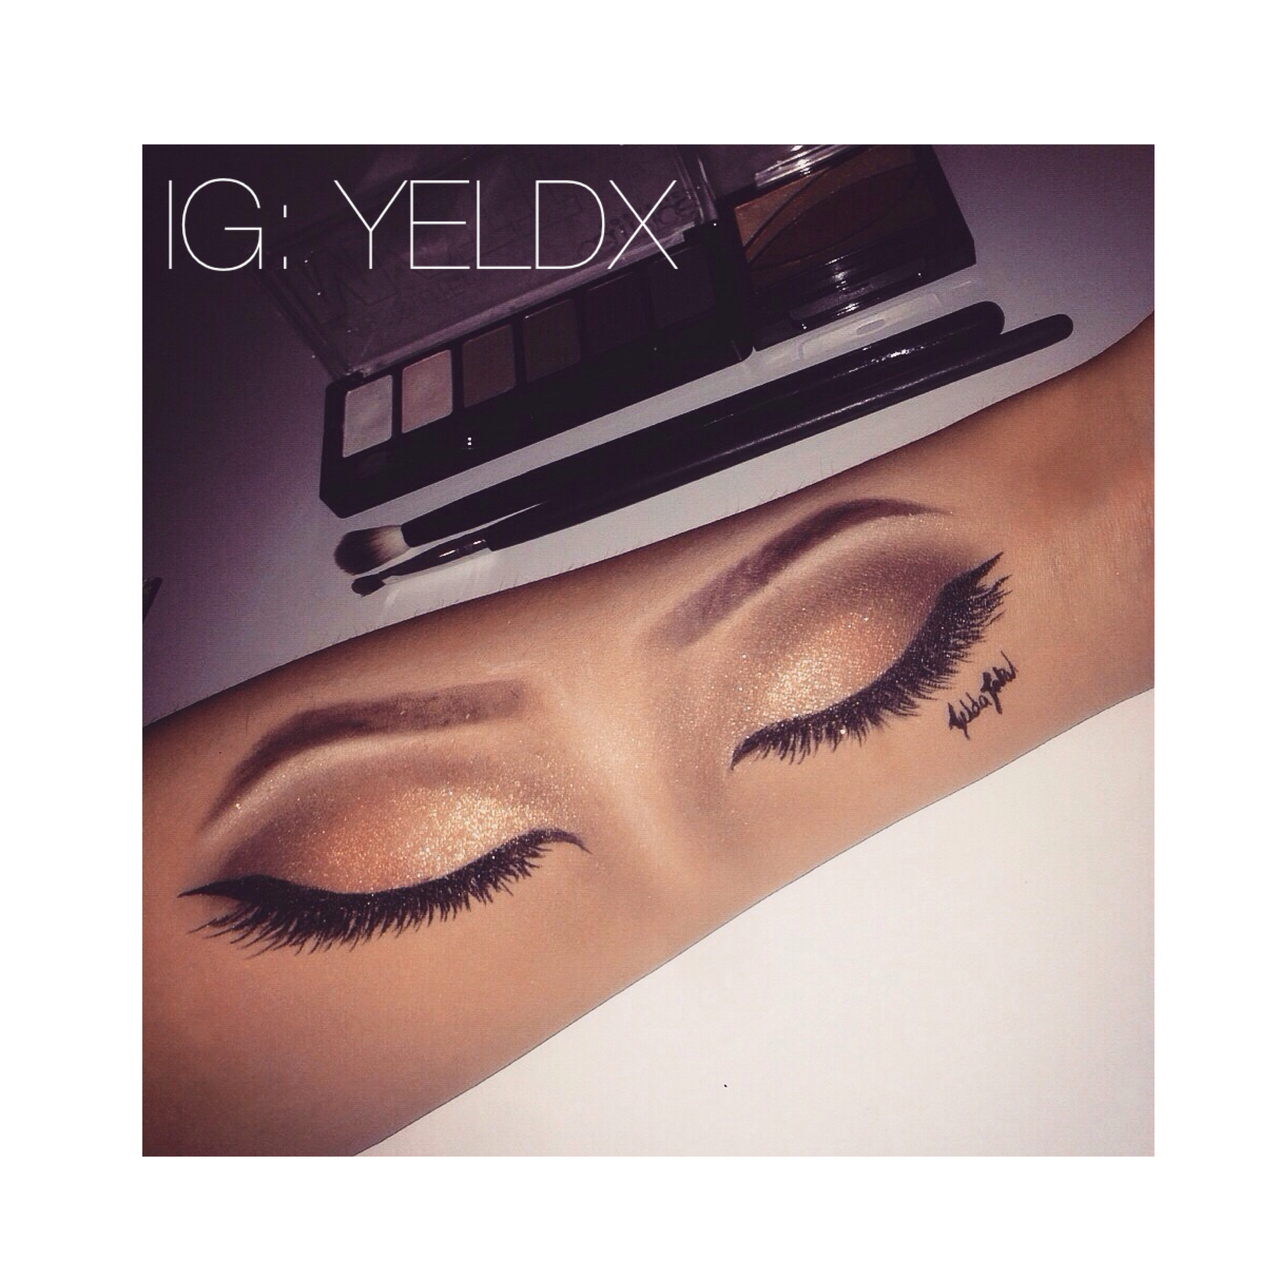 Makeup On Arm Uploaded By Yelda On We Heart It